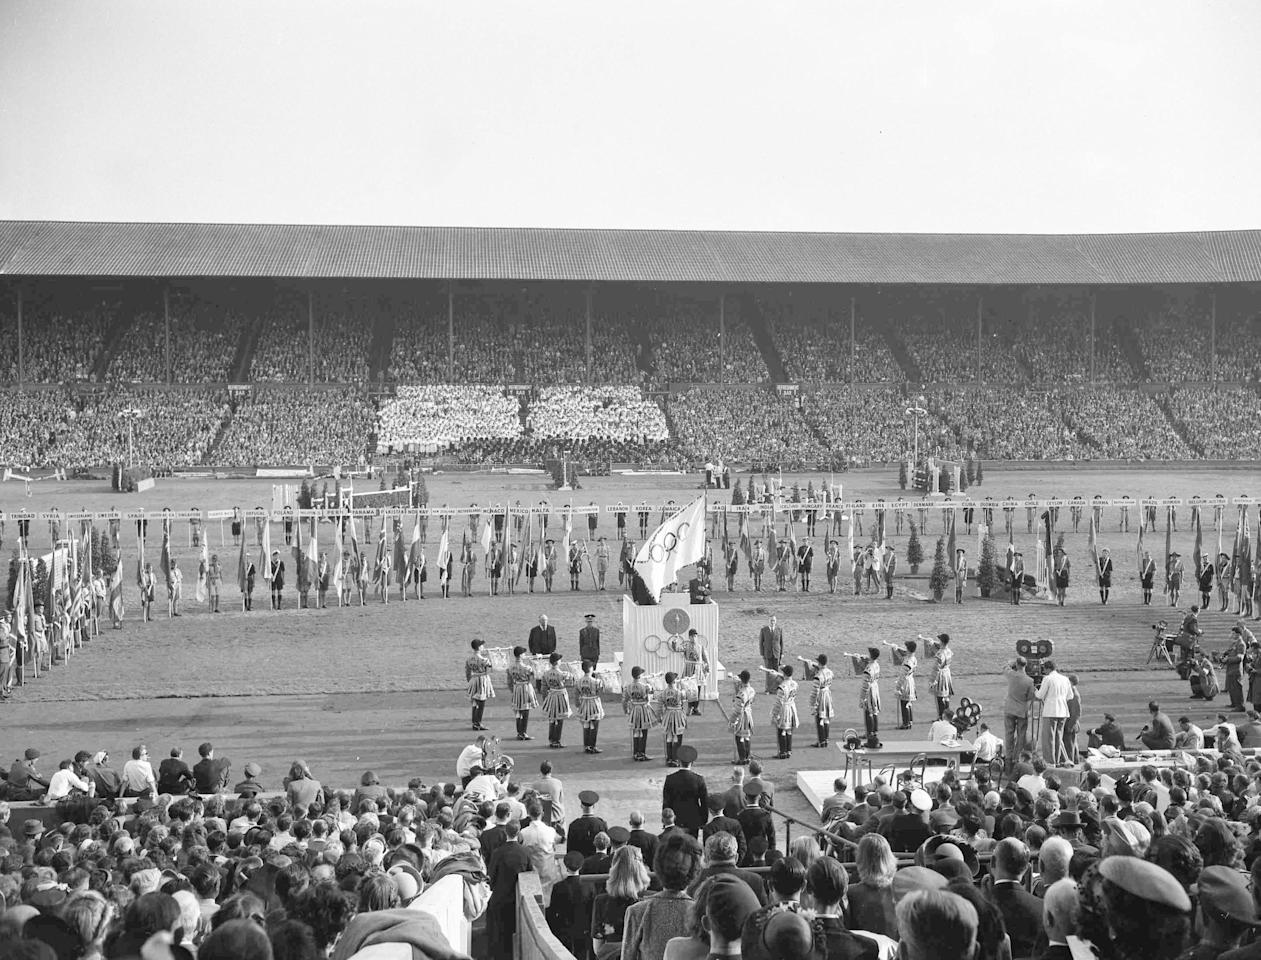 Britain's Sir Frederick Wells, Lord Mayor of London, right on podium holds the Olympic Flag, whilst Sigfrid J. Edstroem, President of the International Committee, obscured by flag, closes the XIV Olympic Games at Wembley Stadium, London, Aug. 14, 1948. Standing right of podium is Lord Burghley, Chairman of the organising committee of the London Olympics. Royal State Trumpeters wait to play a fanfare, left. (AP Photo)